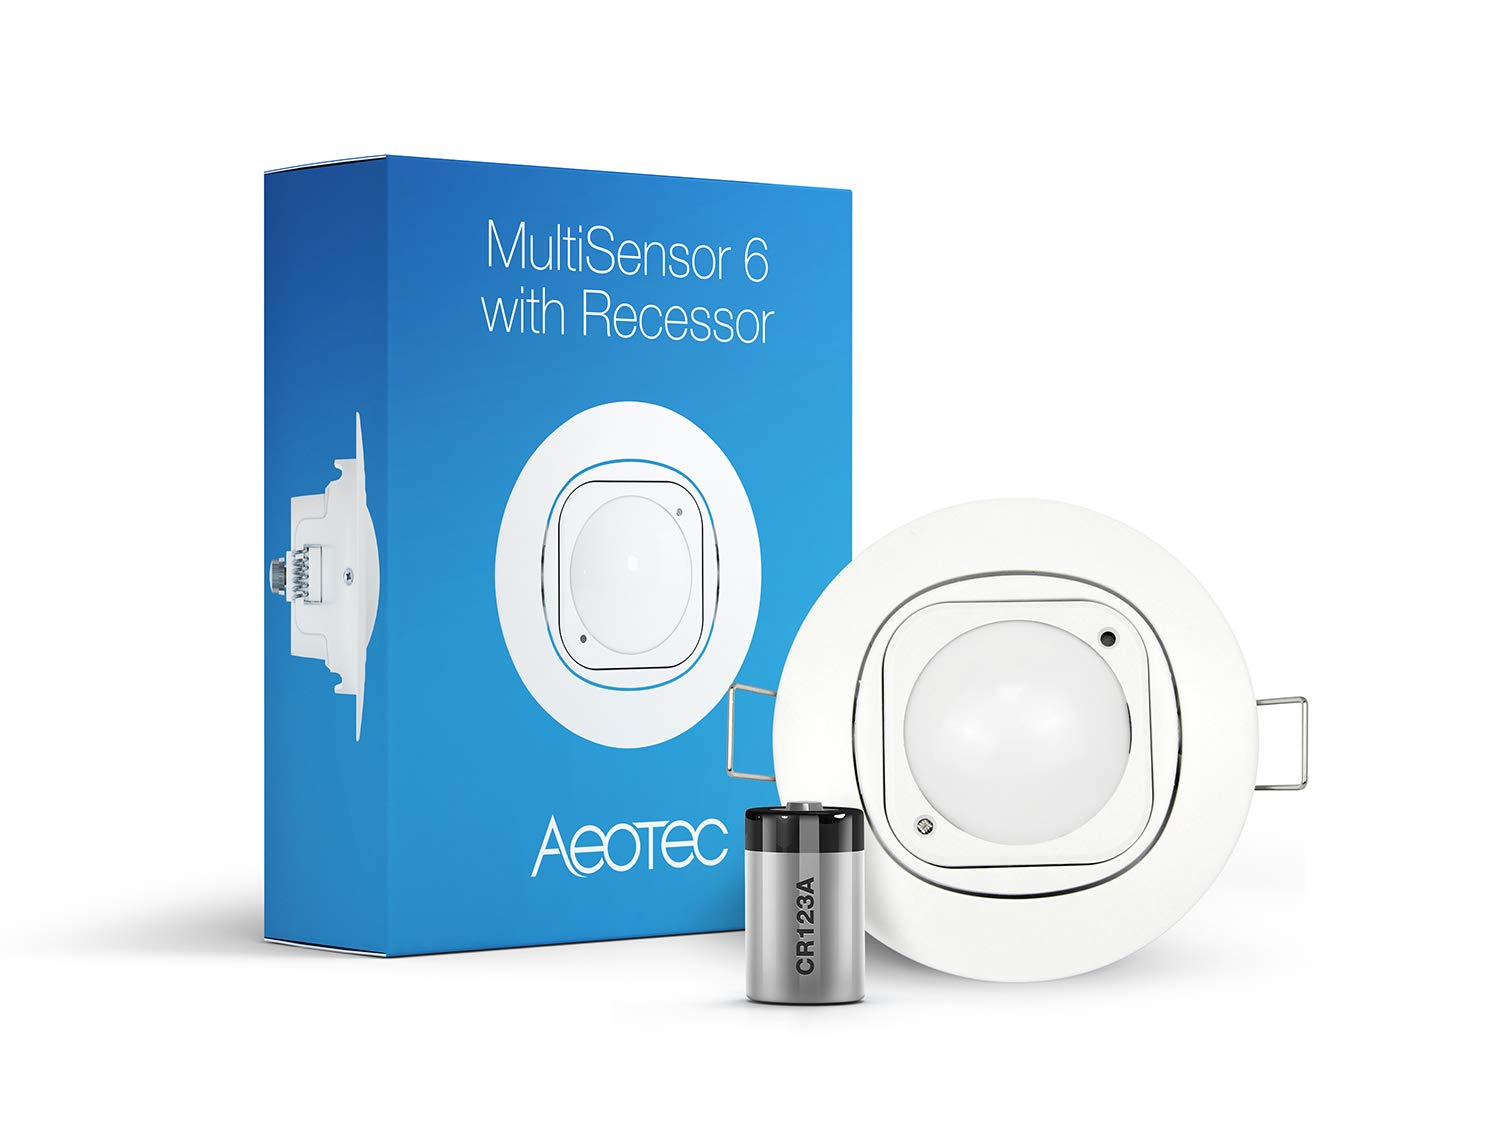 Aeotec Multisensor 6 & Ceiling Recessor, Z-Wave Plus 6-in-1 Motion, Temperature, Humidity, Light, UV, Vibration Sensor, Battery Included by Aeotec